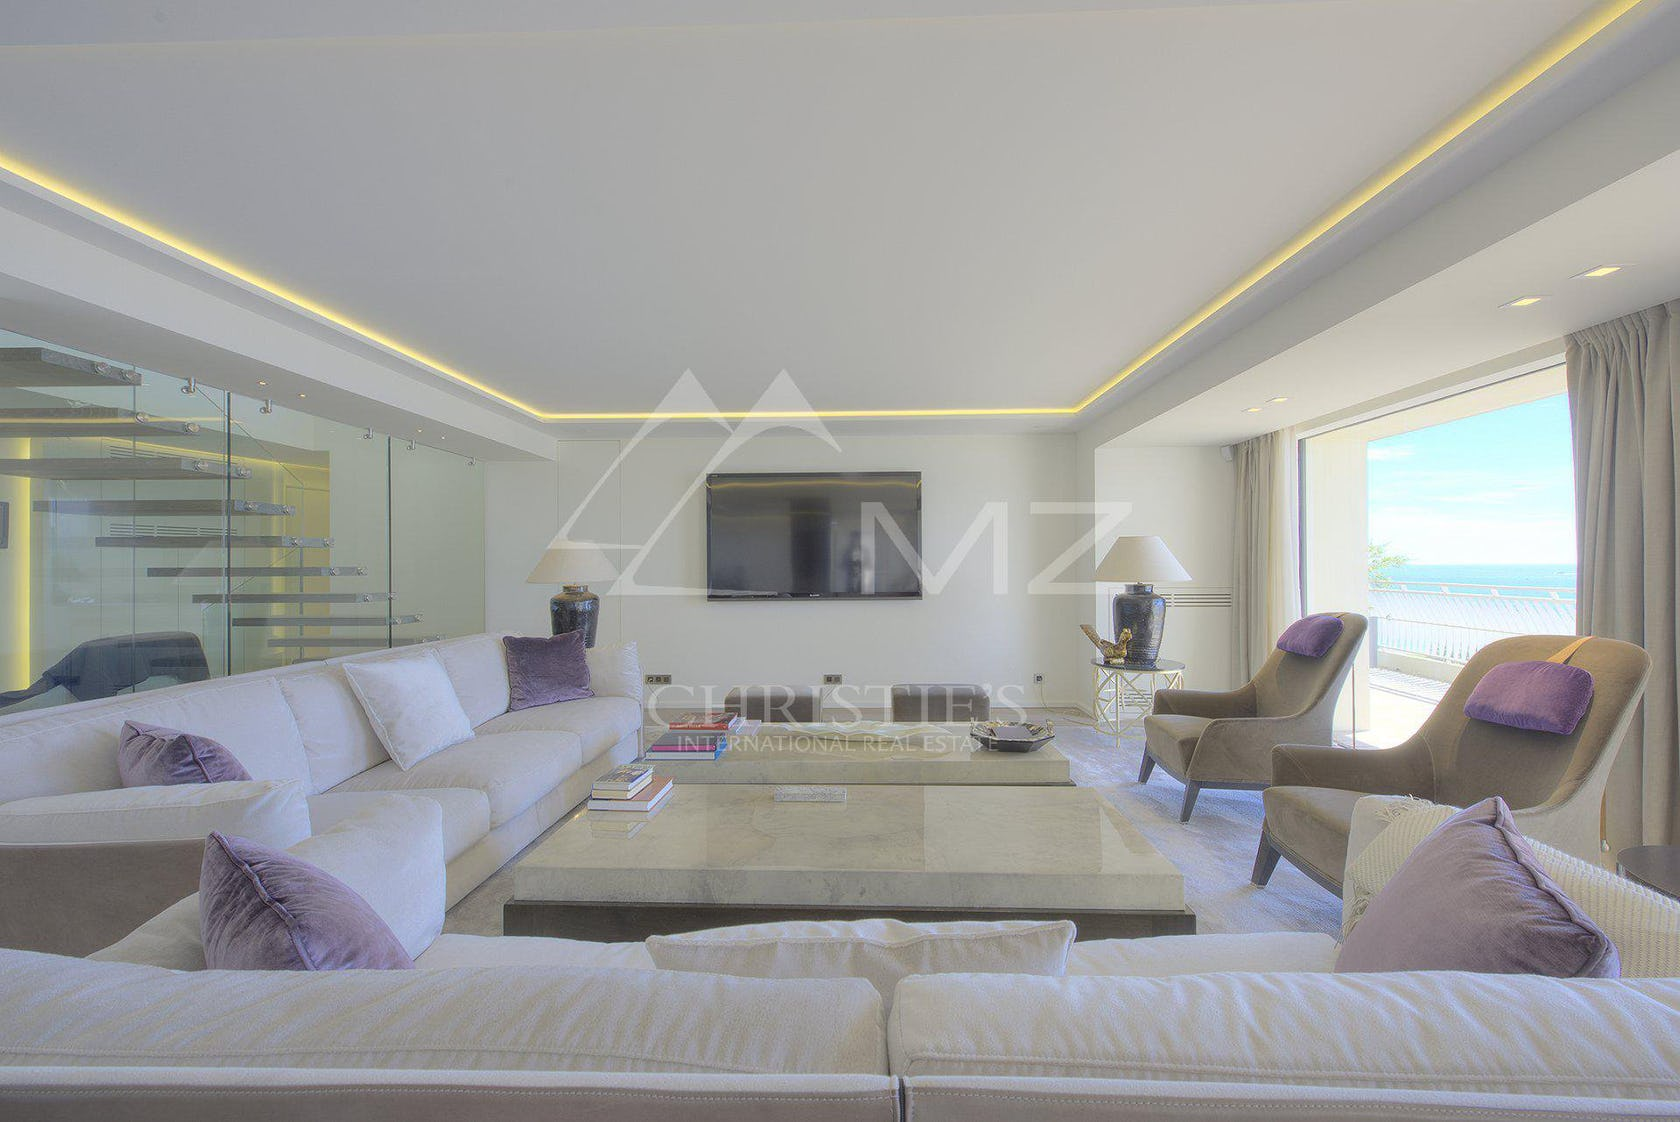 living room room indoors furniture interior design couch flooring table